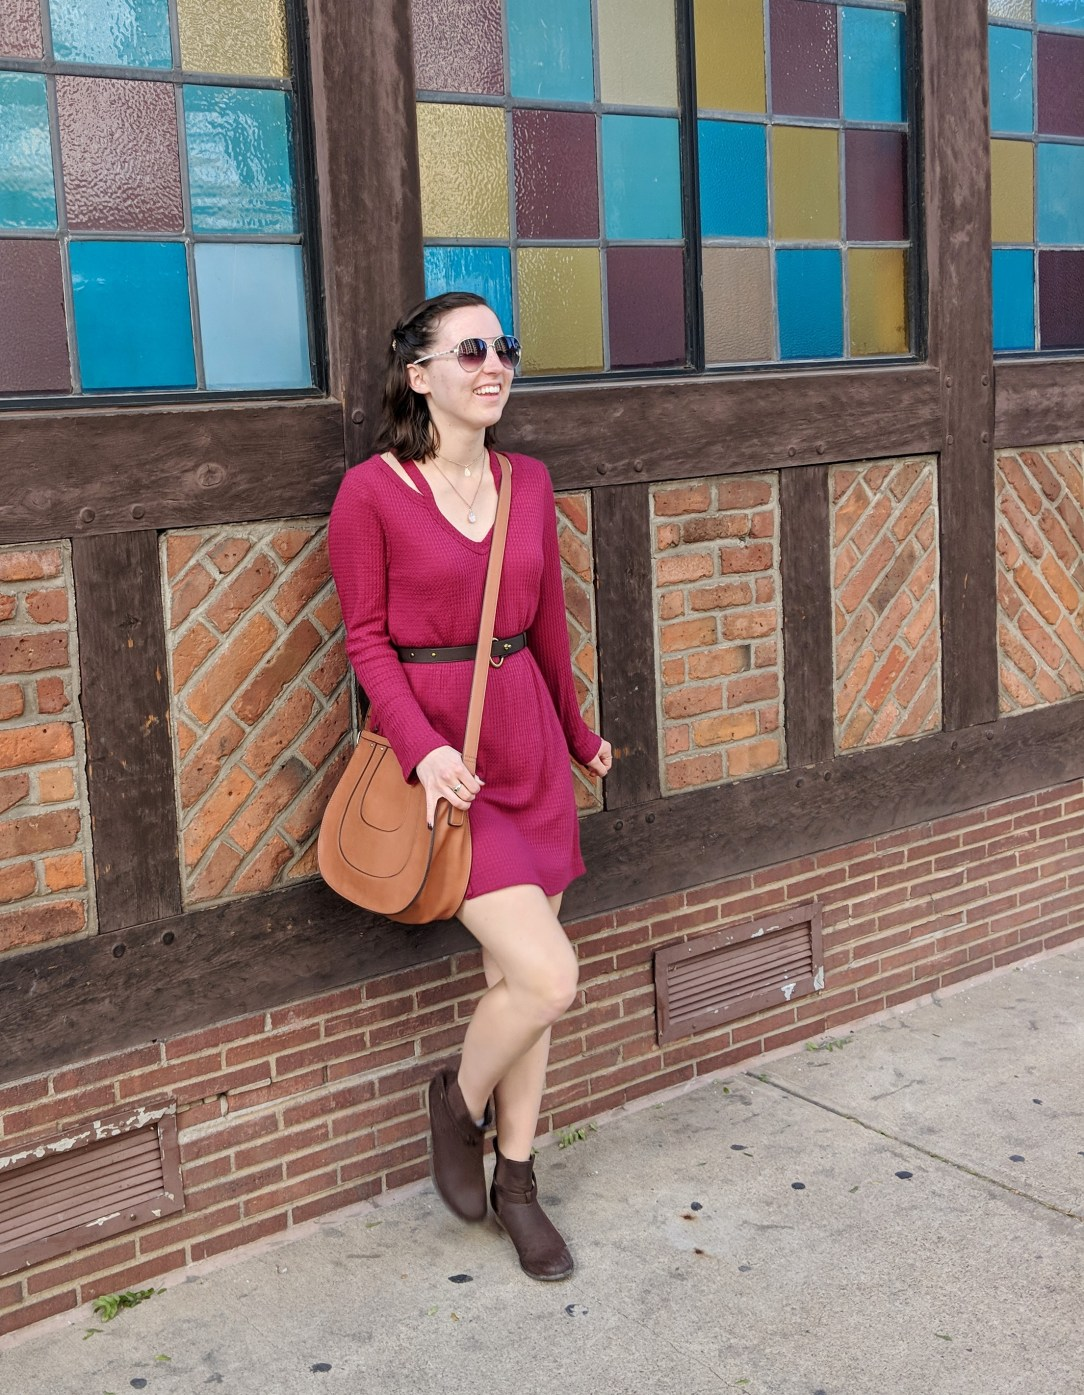 fashionista in a red dress leaning against a brick wall